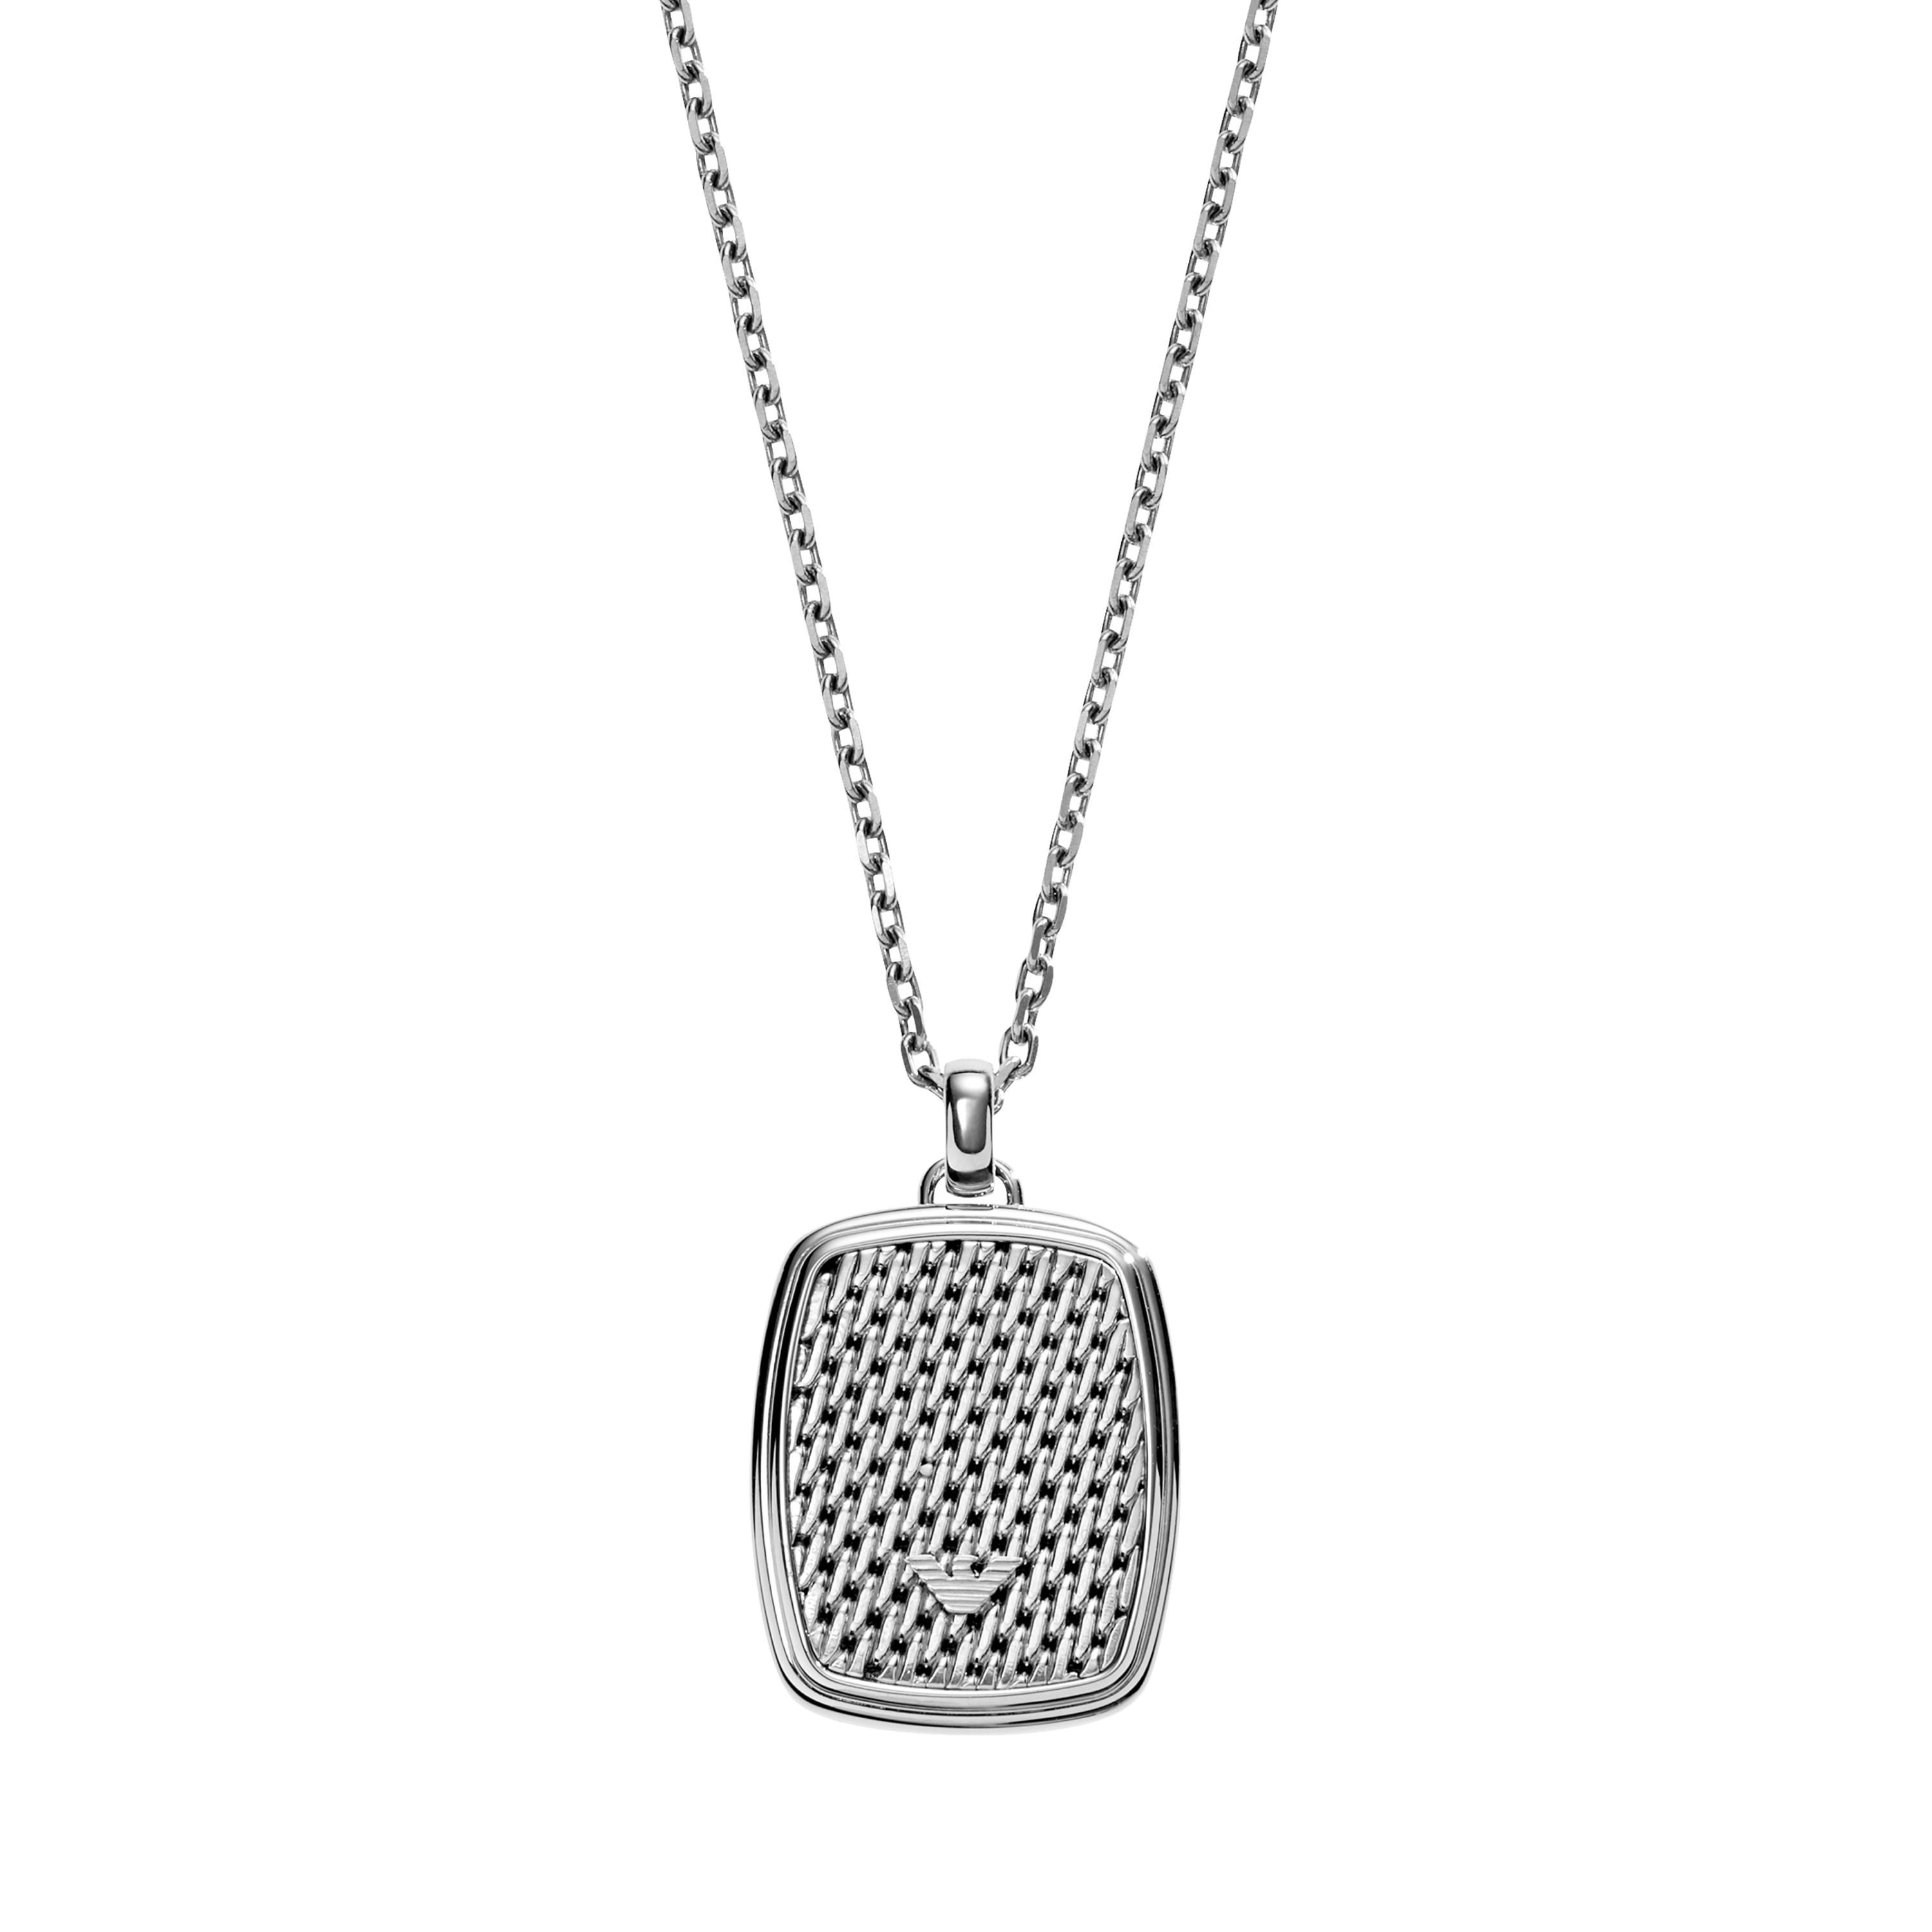 Emporio Armani Egs2137040 mens necklace NA